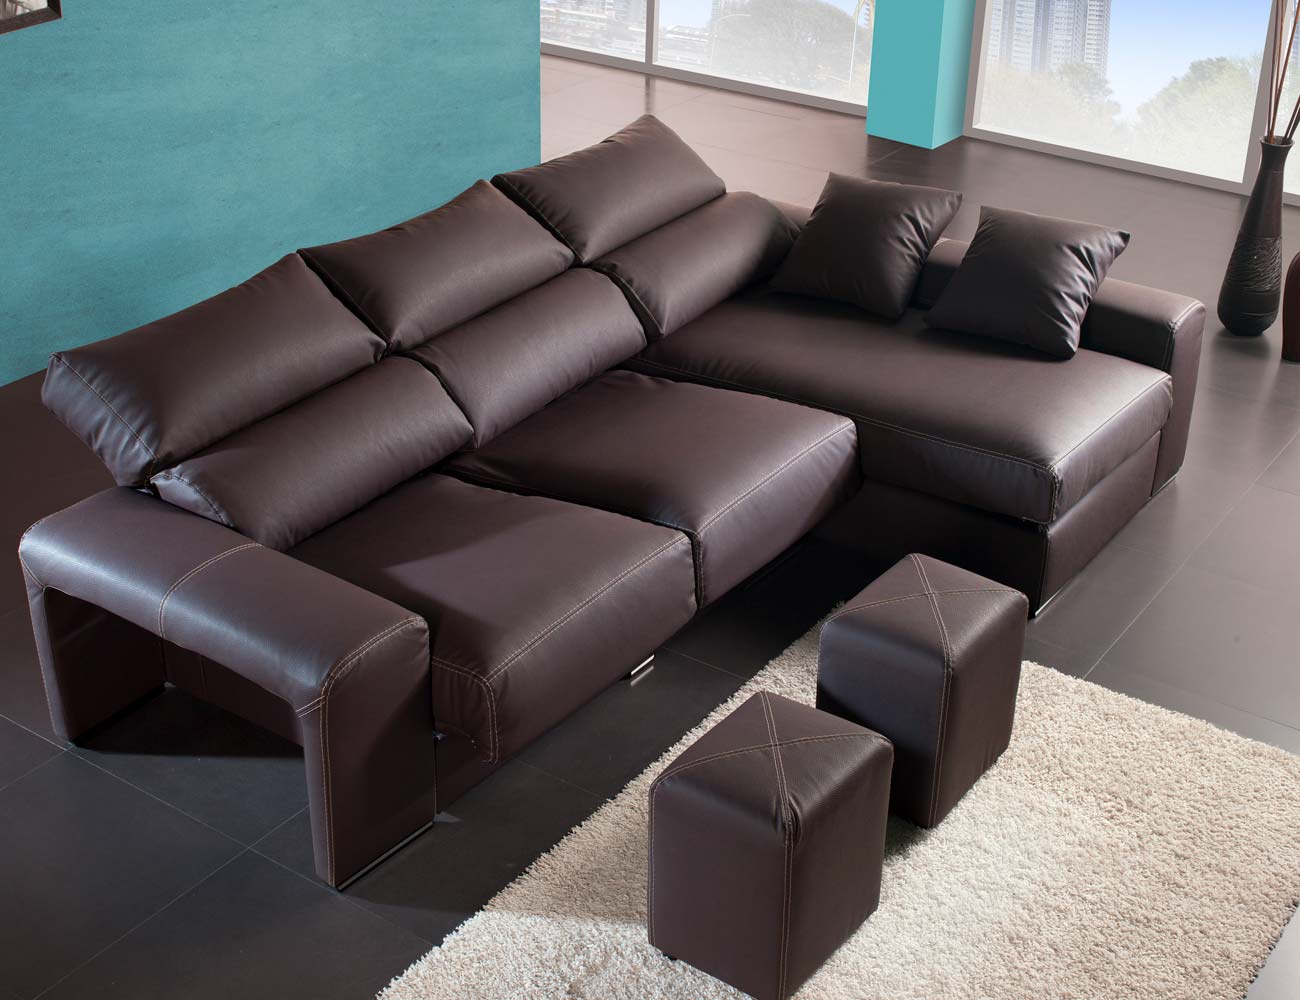 Sofa chaiselongue moderno polipiel chocolate poufs taburetes28